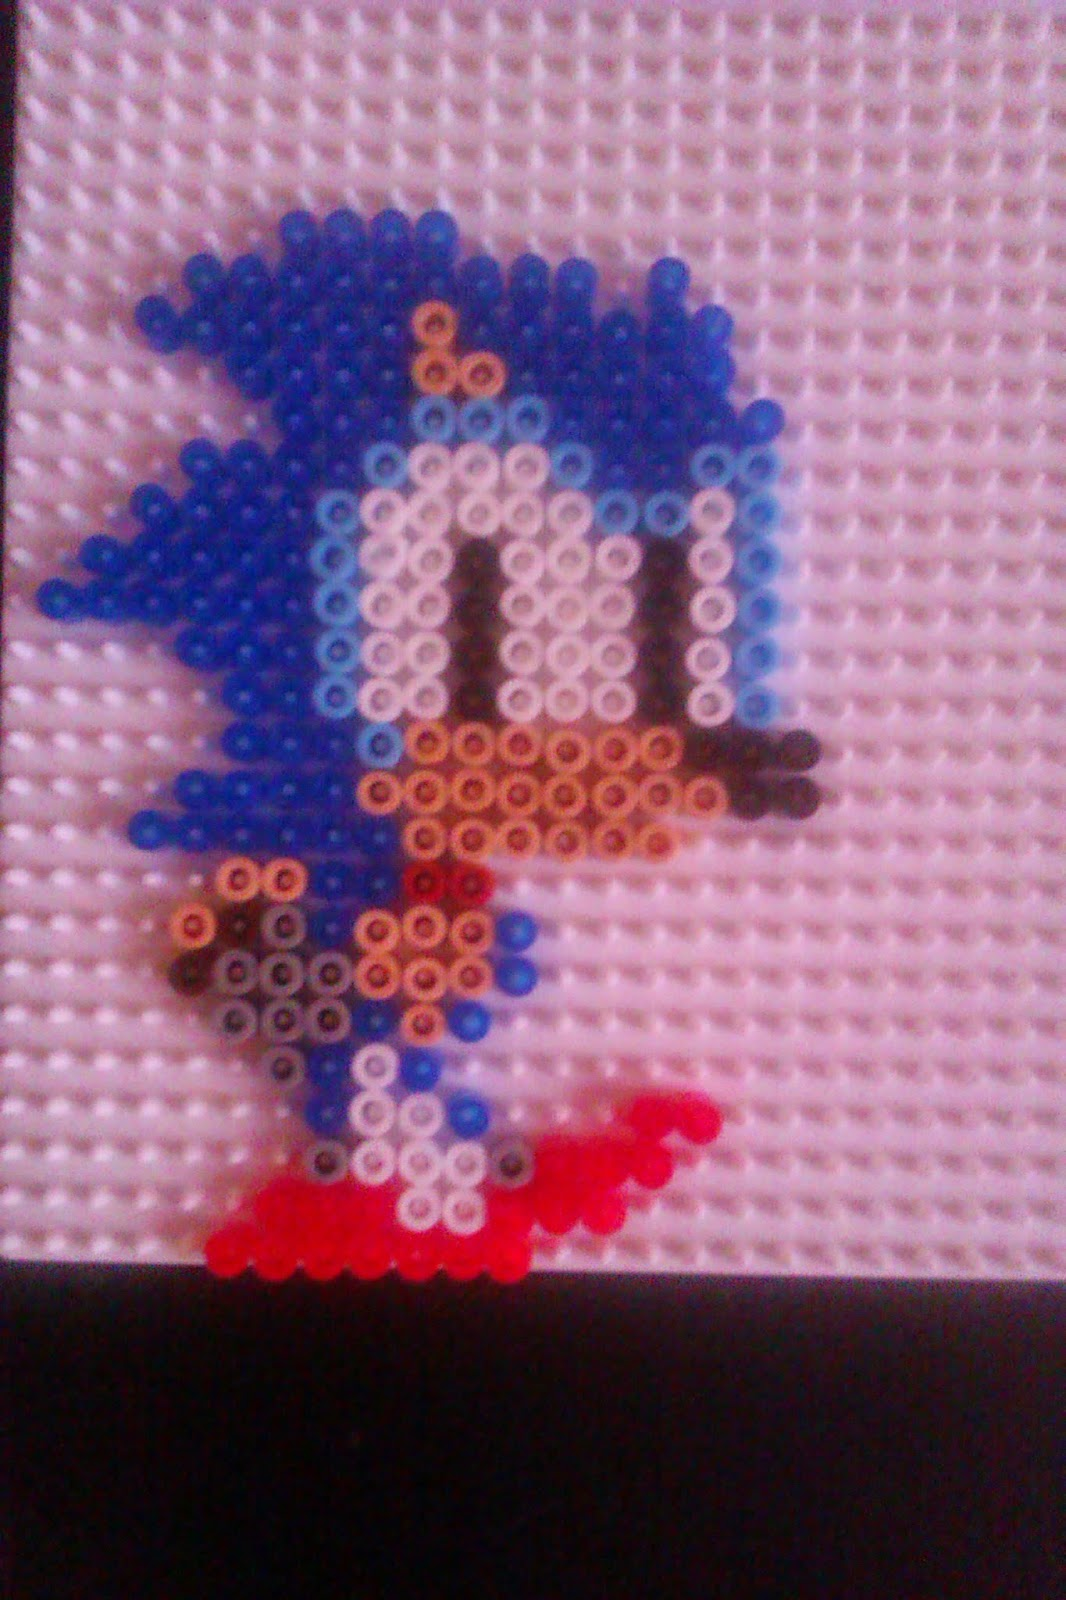 pixel art en perle hama quelques personnages de sonic en perle repasser. Black Bedroom Furniture Sets. Home Design Ideas